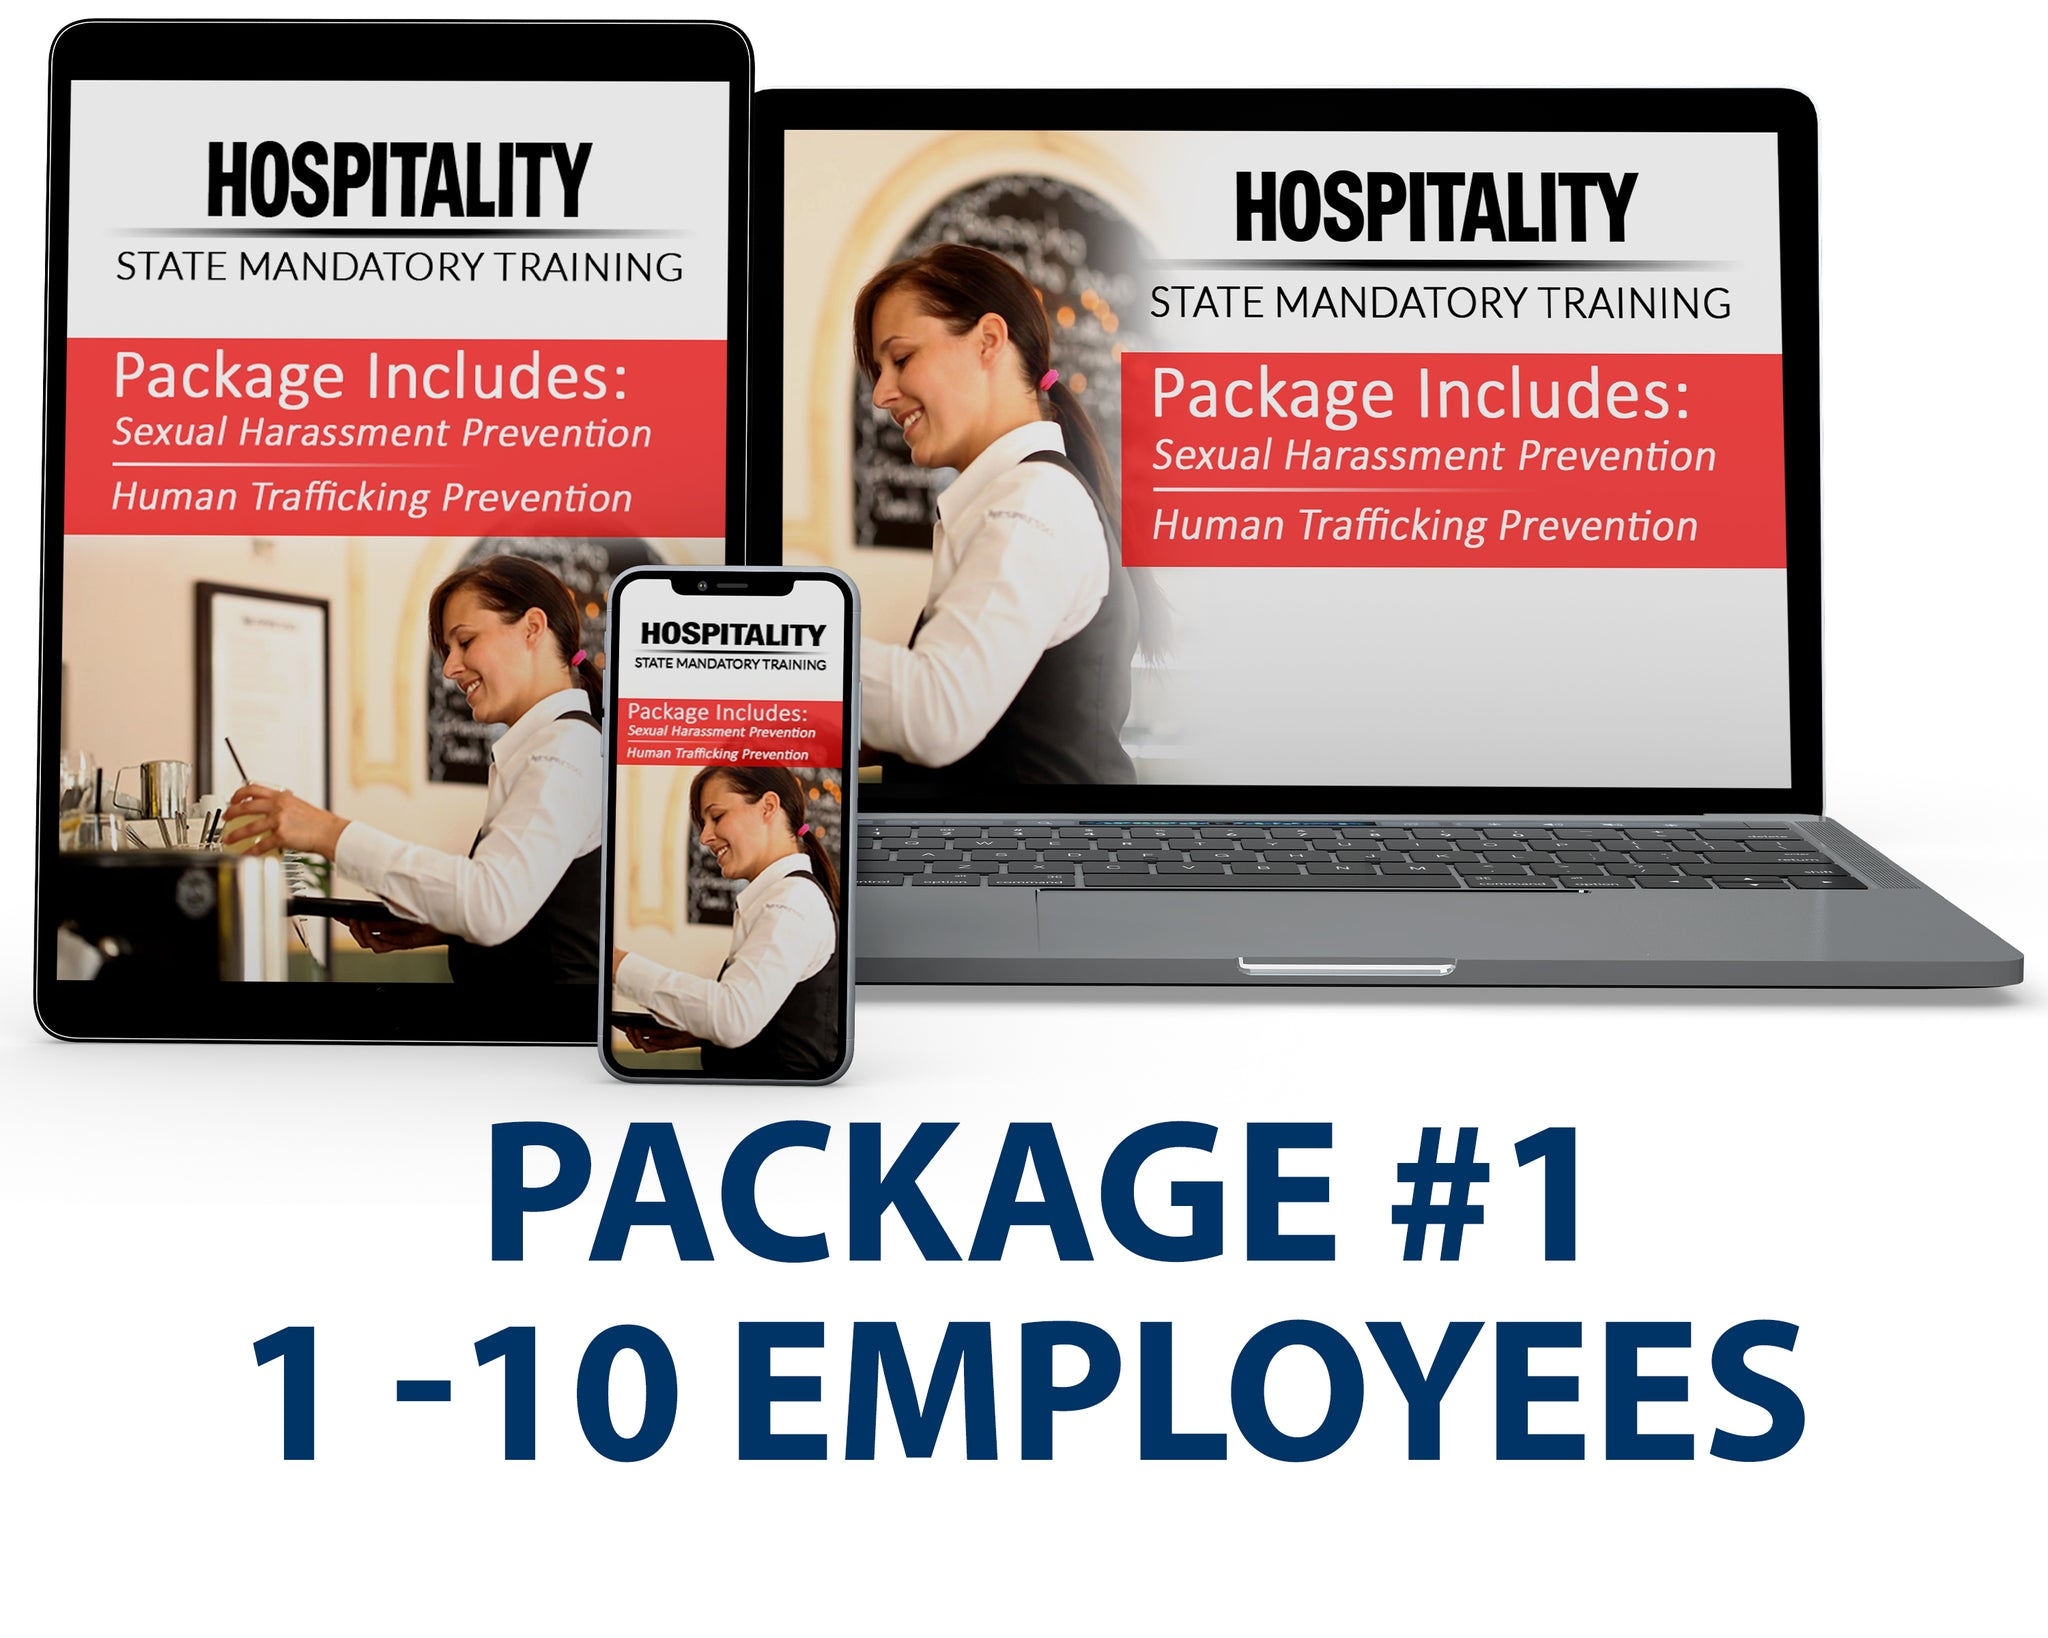 CA - Hospitality Bundle Package #1 (1-10 Employees) - myCEcourse